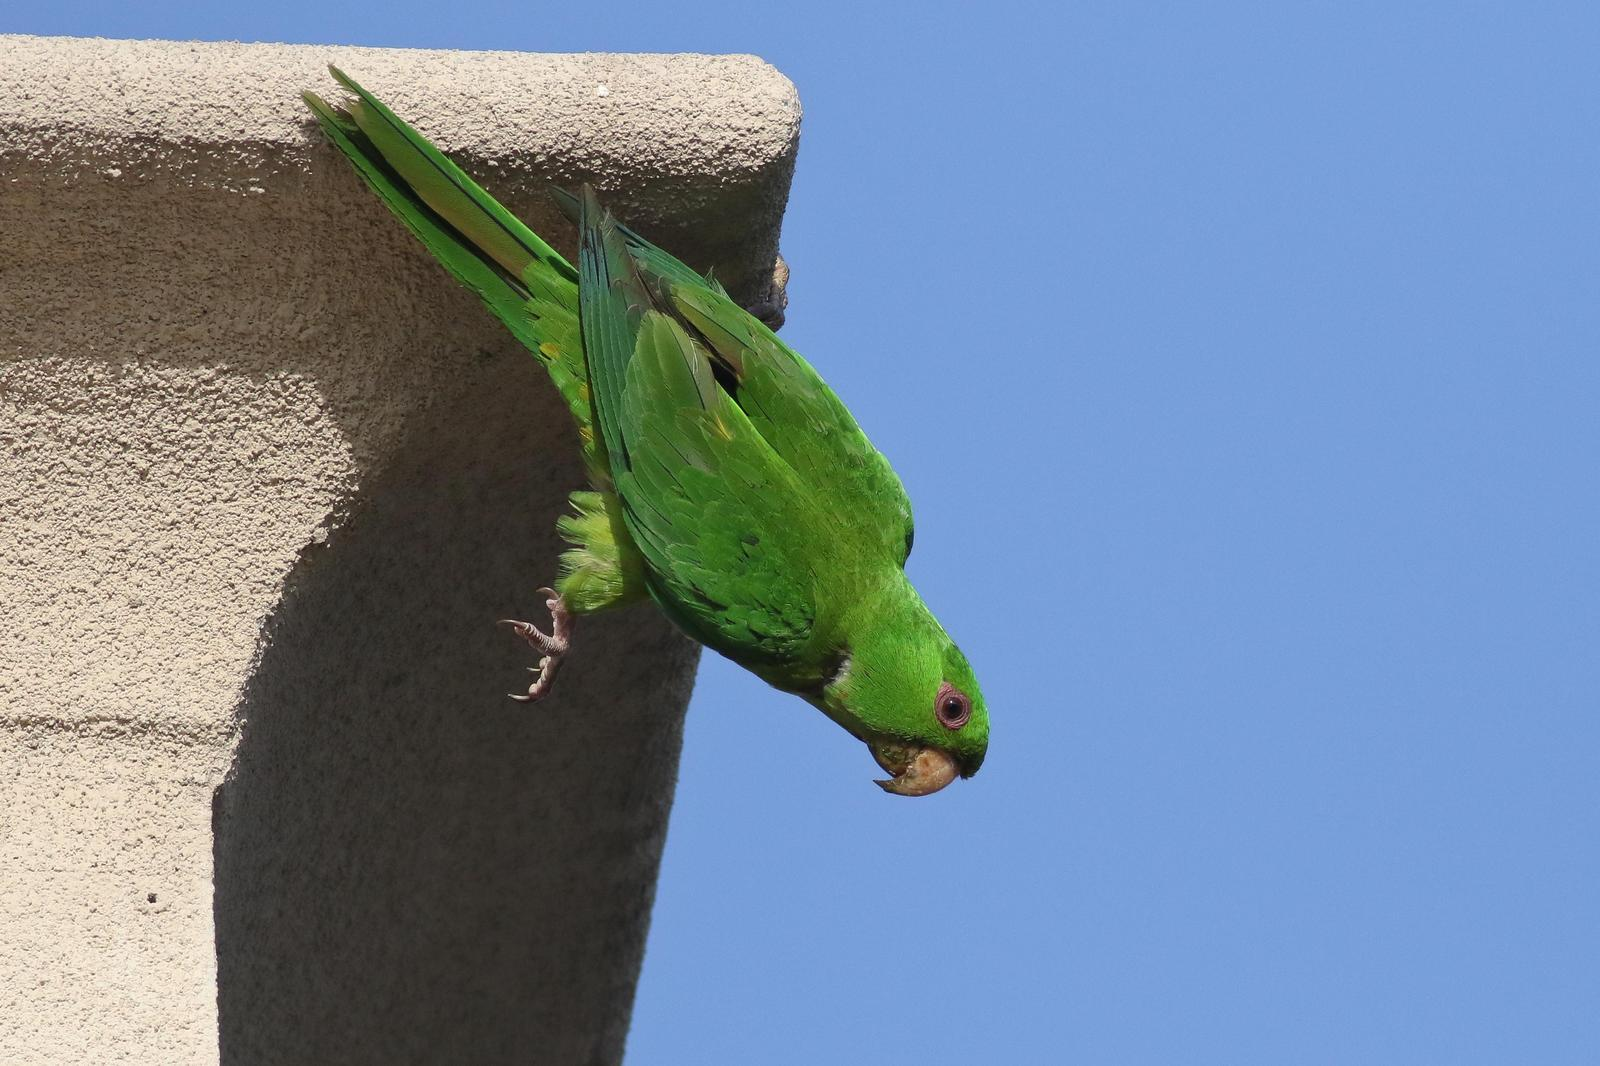 Green Parakeet Photo by Tom Ford-Hutchinson